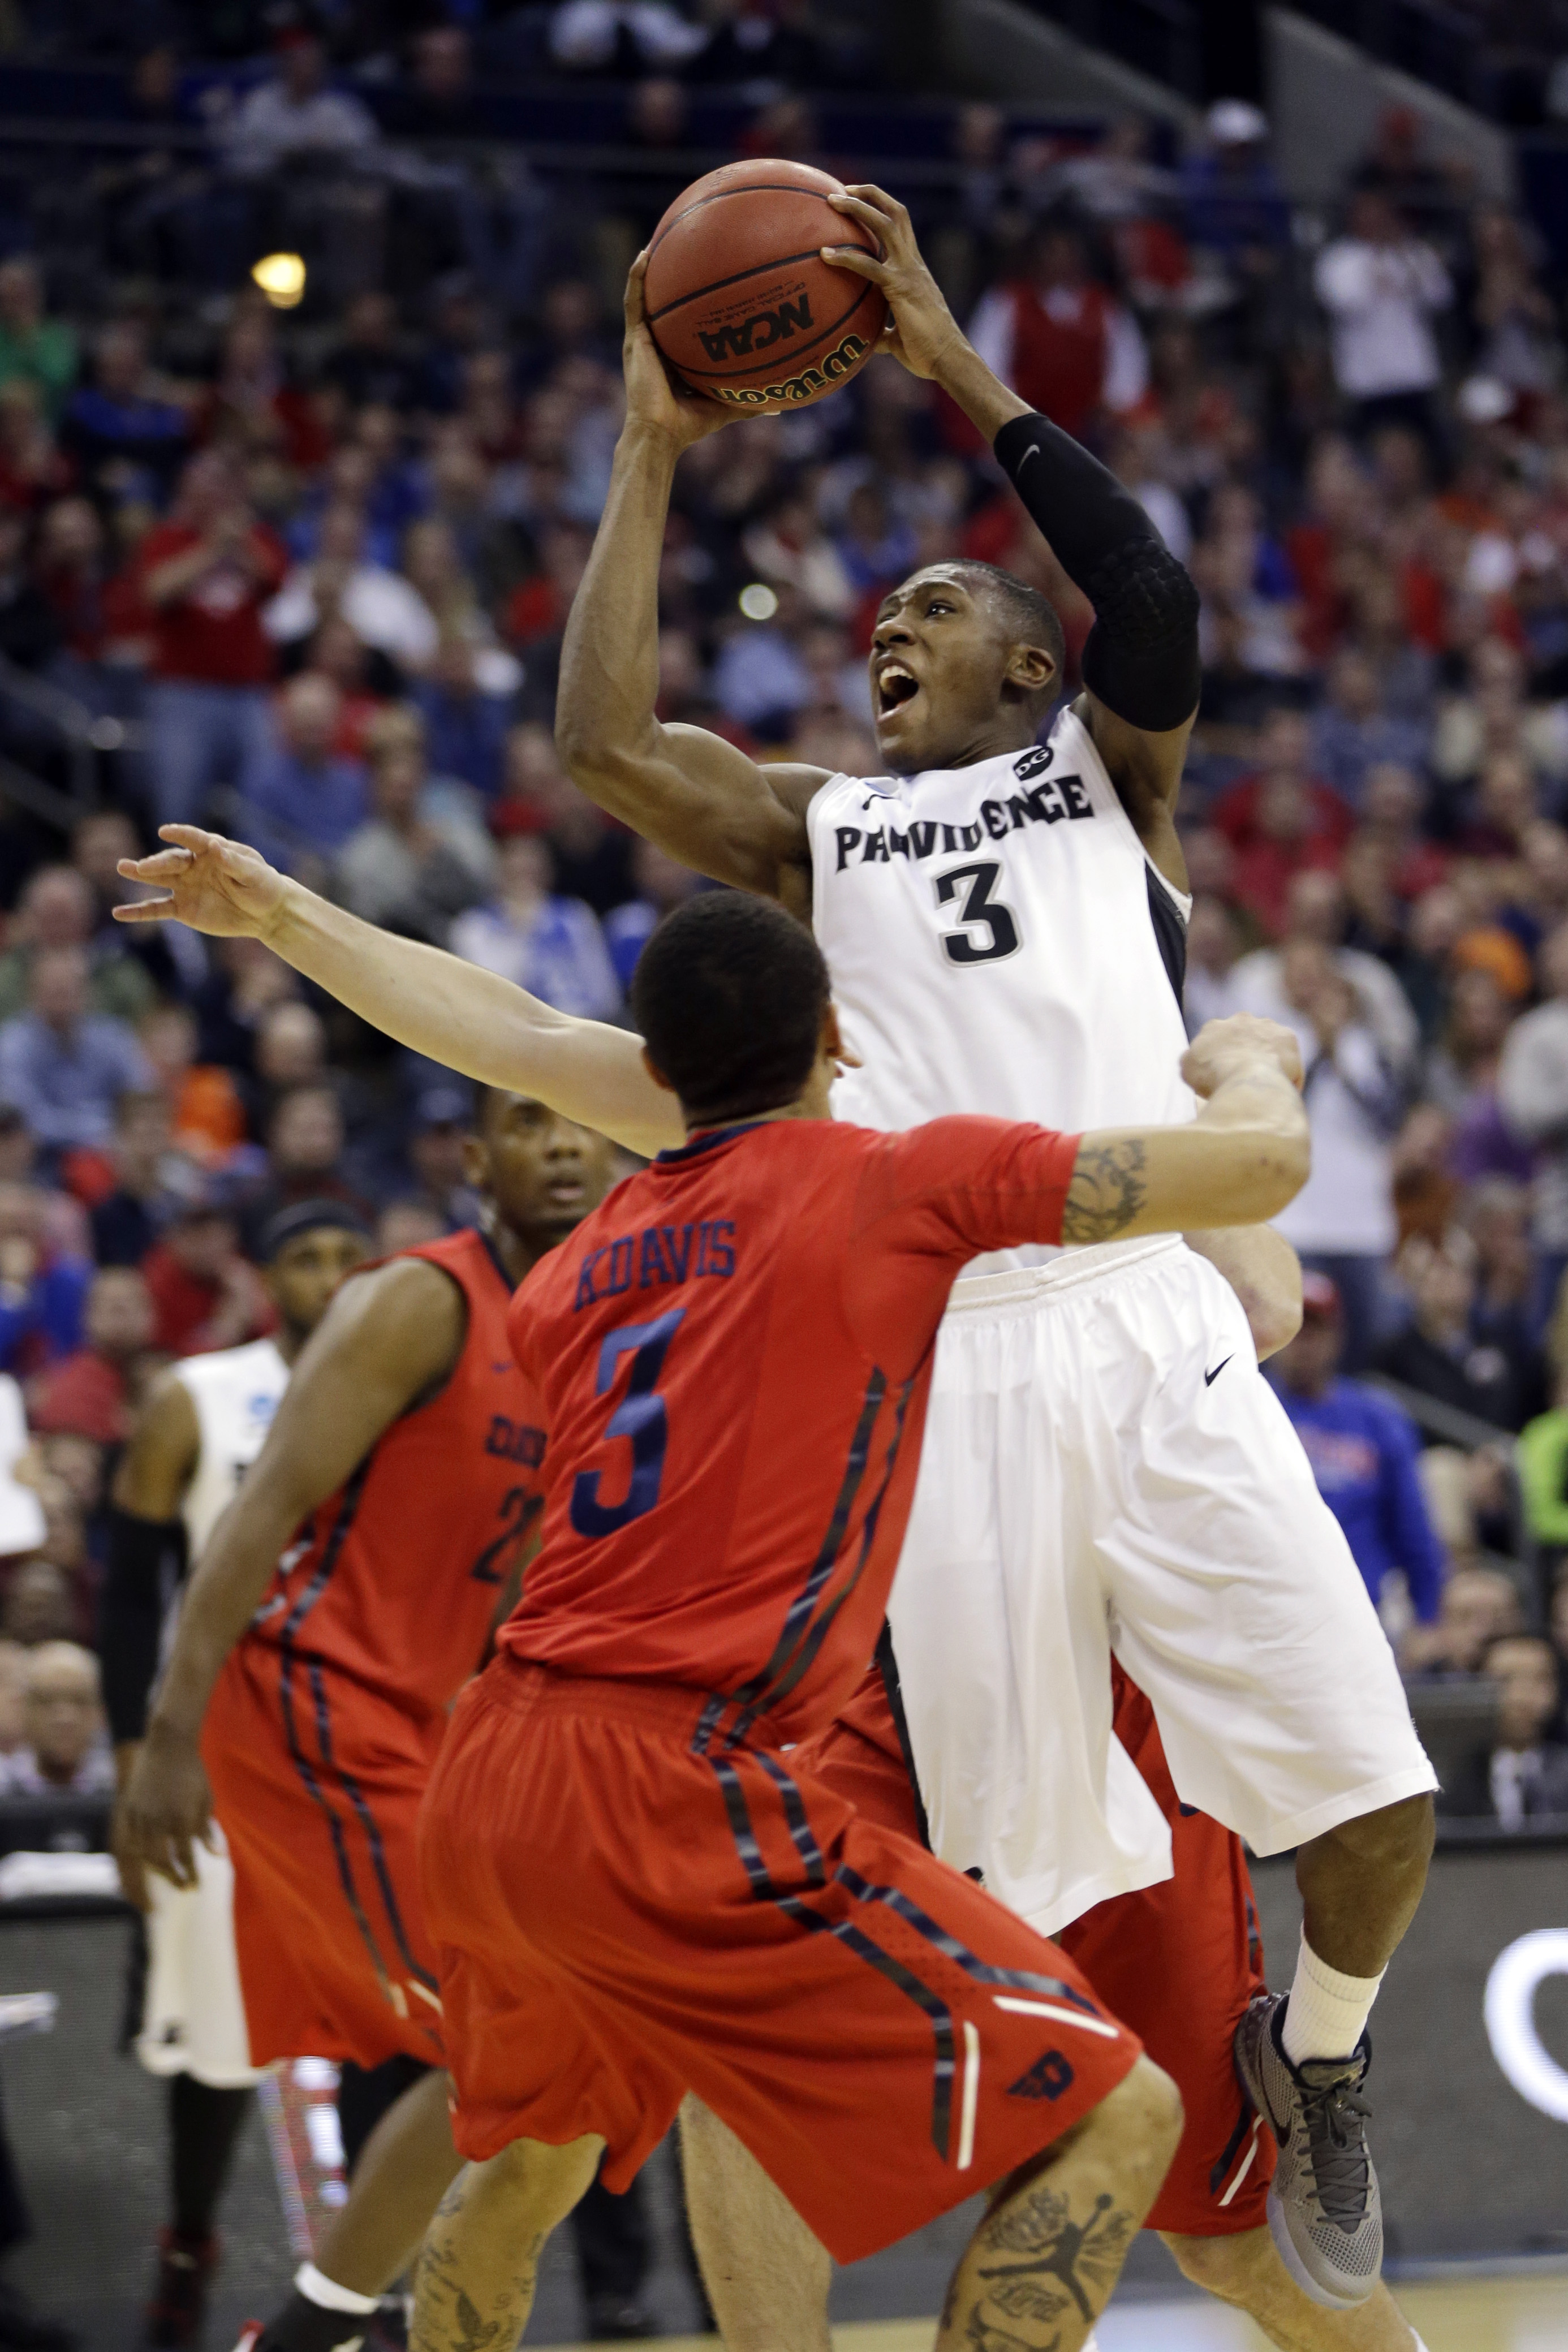 FILE - In this March 20, 2015, file photo, Providence's Kris Dunn (3) shoots against Dayton in the first half of an NCAA tournament college basketball game in the Round of 64 in Columbus, Ohio. Dunn was selected to The Associated Press preseason All-Ameri